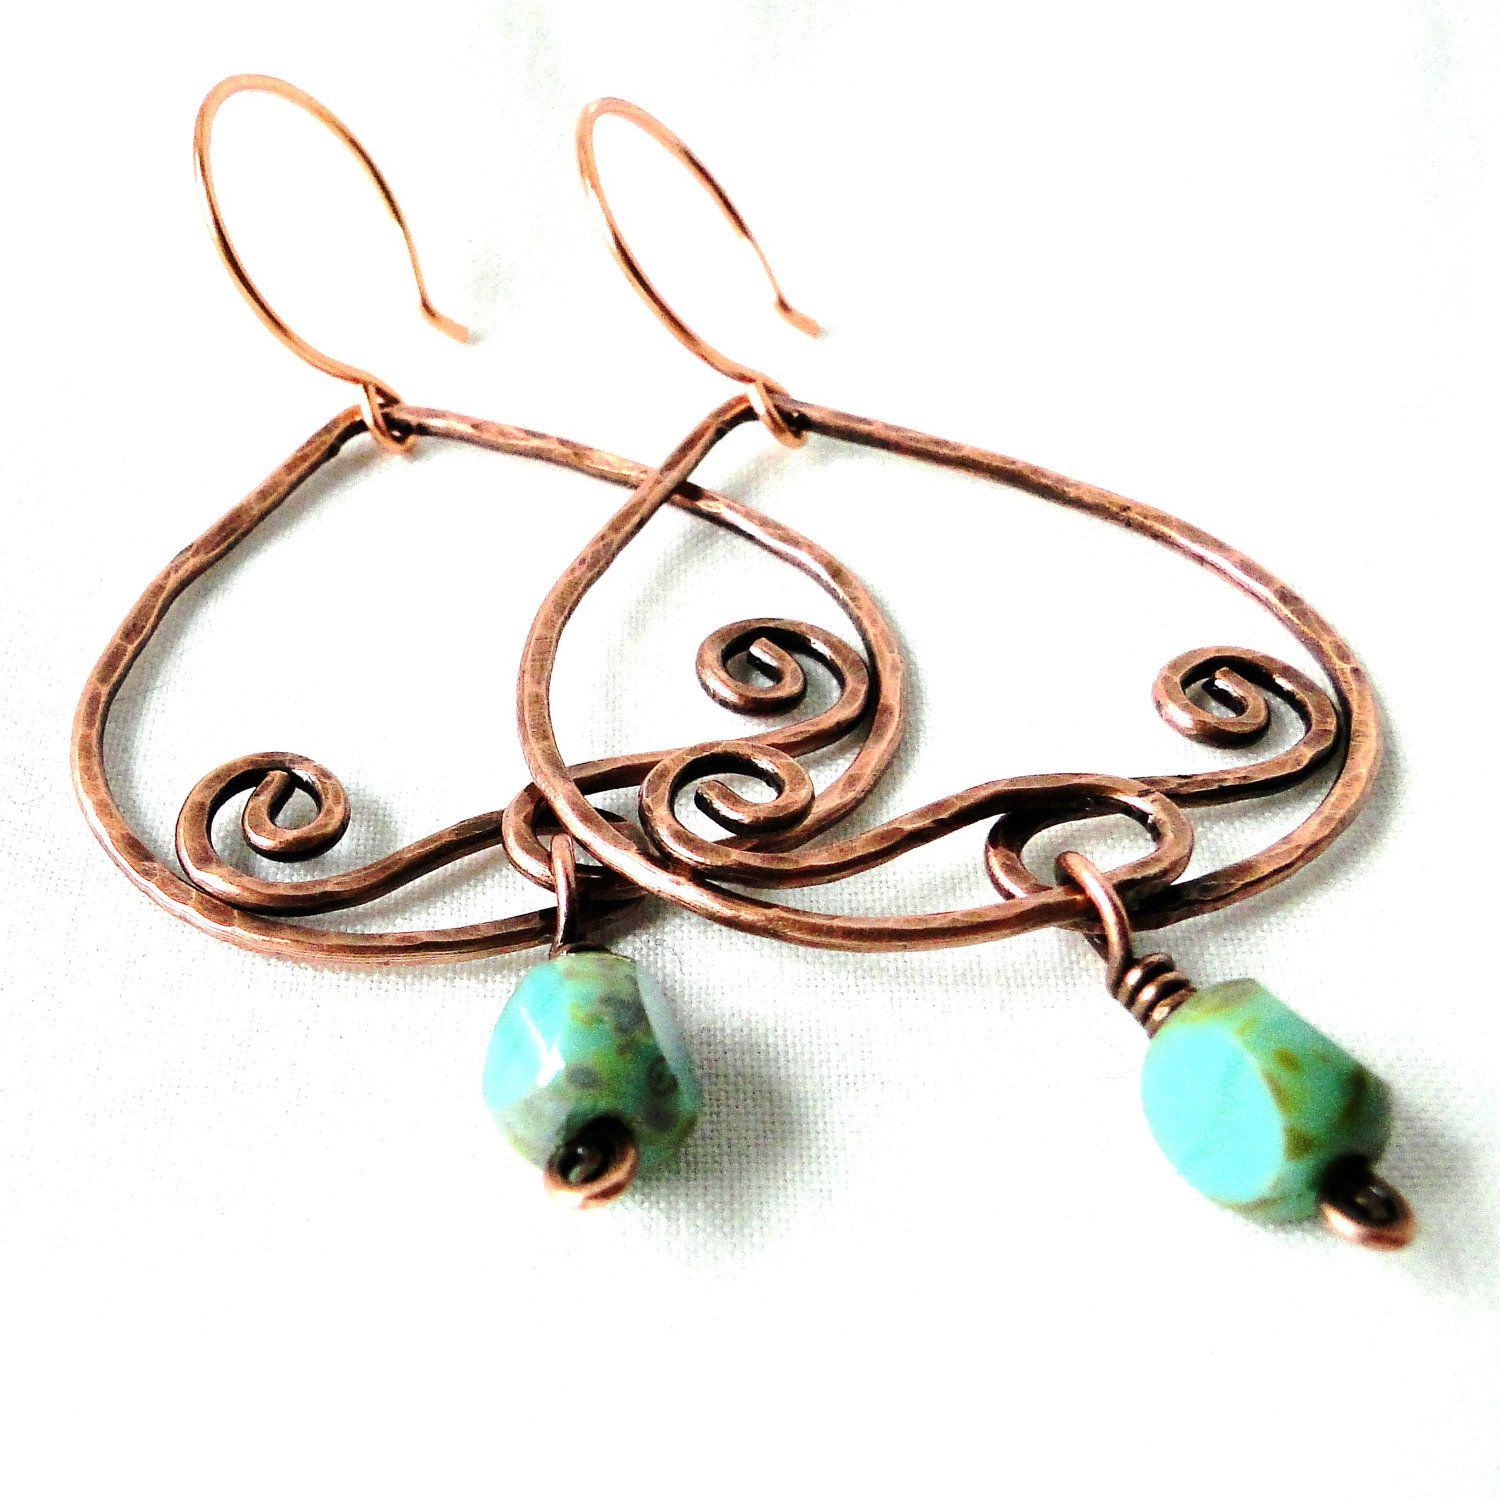 Antiqued Copper Earrings, Hammered Jewelry, Handcrafted, Wire ...